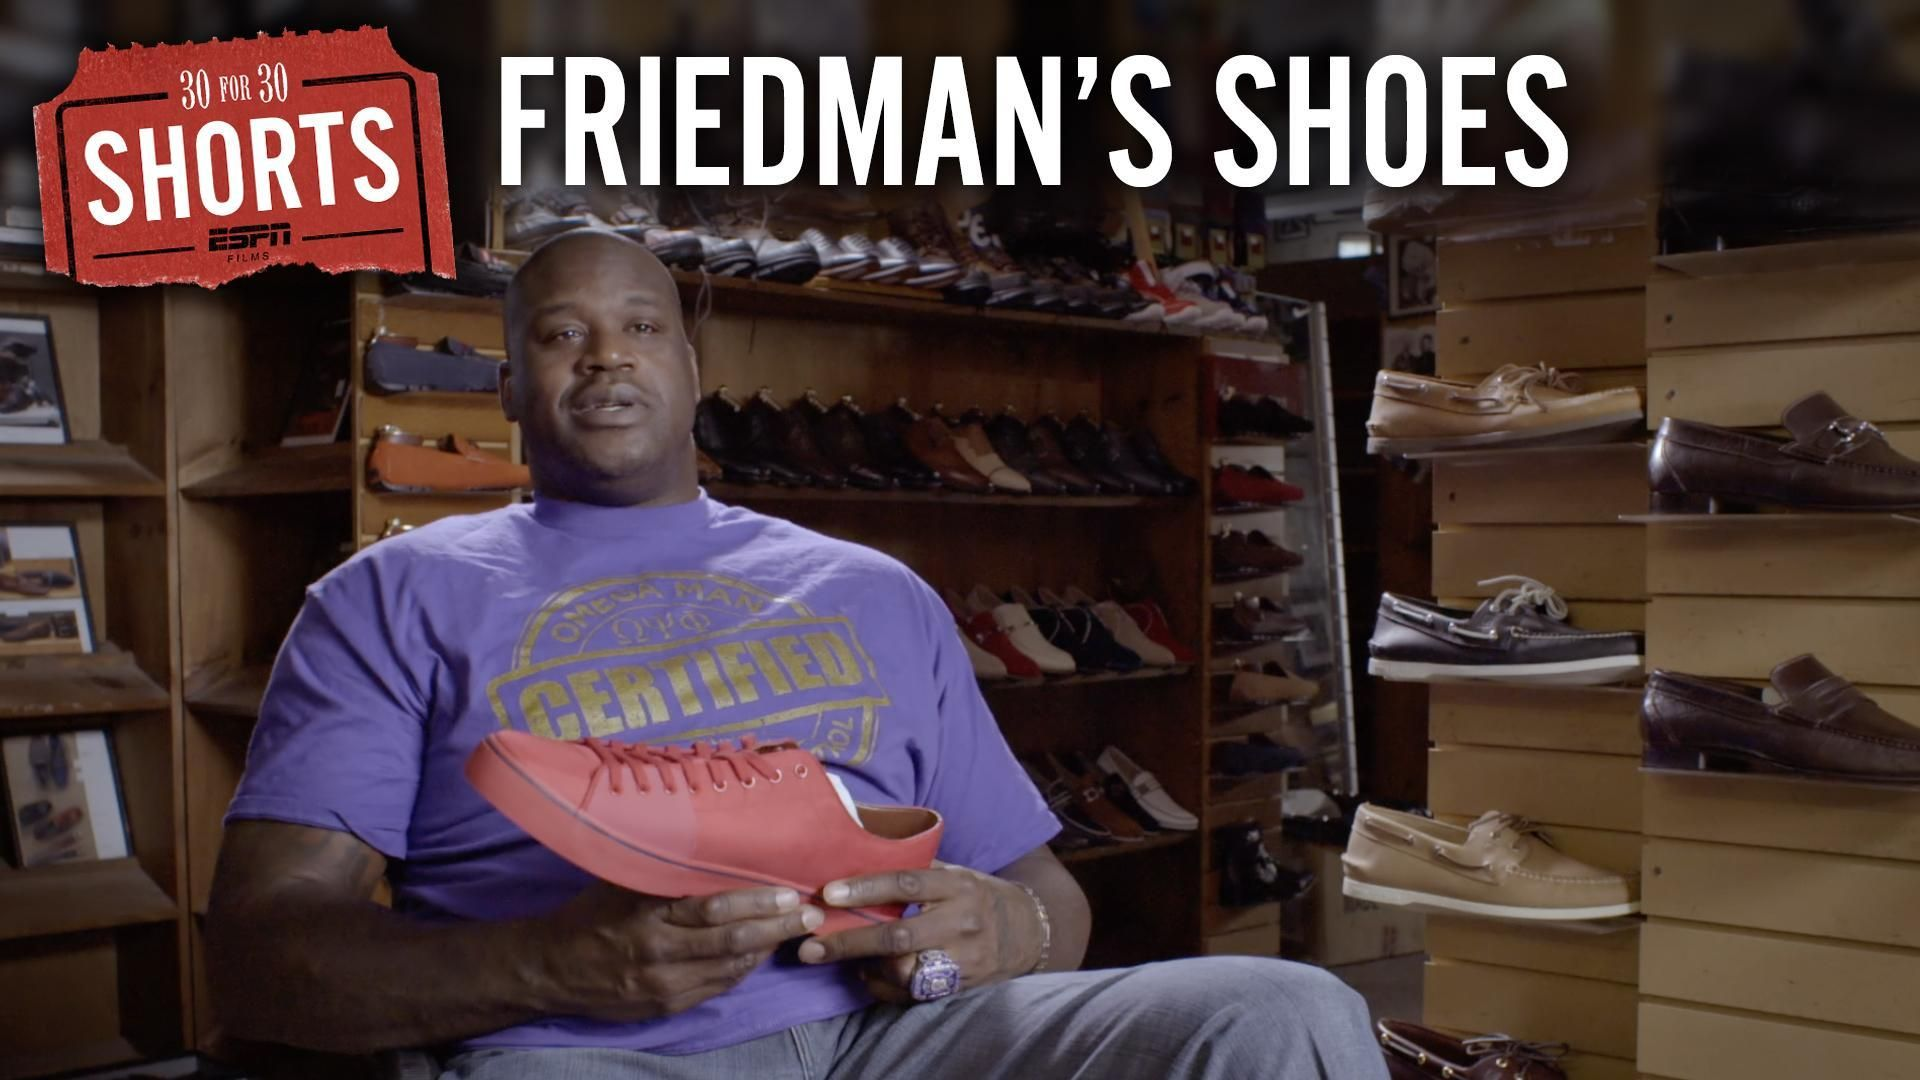 30 for 30 Shorts: Friedman's Shoes